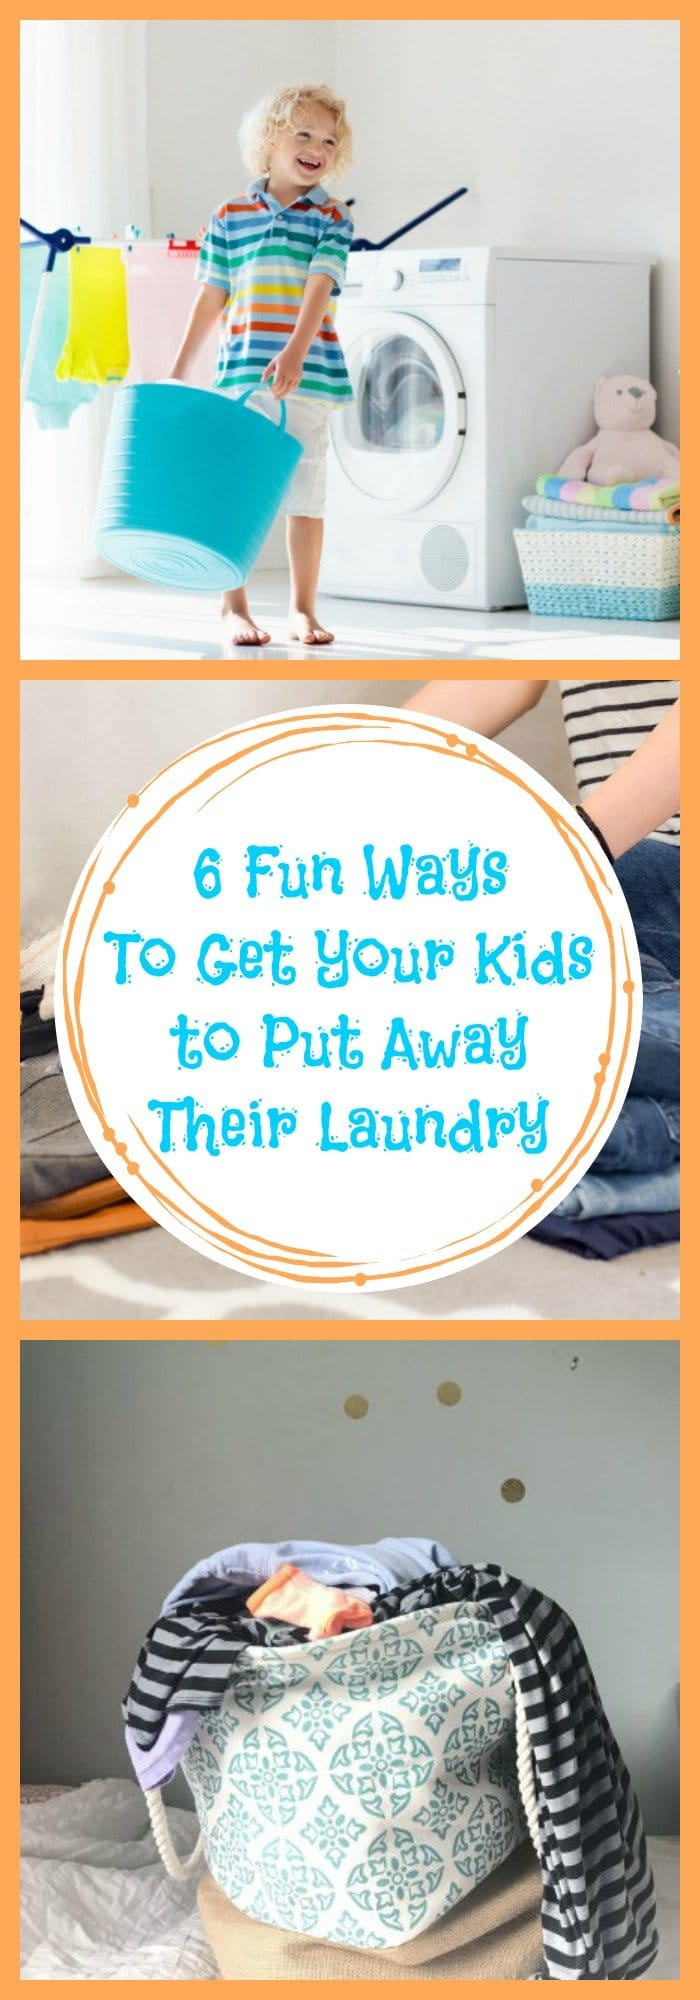 6 Fun Ways to Get Your Kids tp Put Away Their Laundry